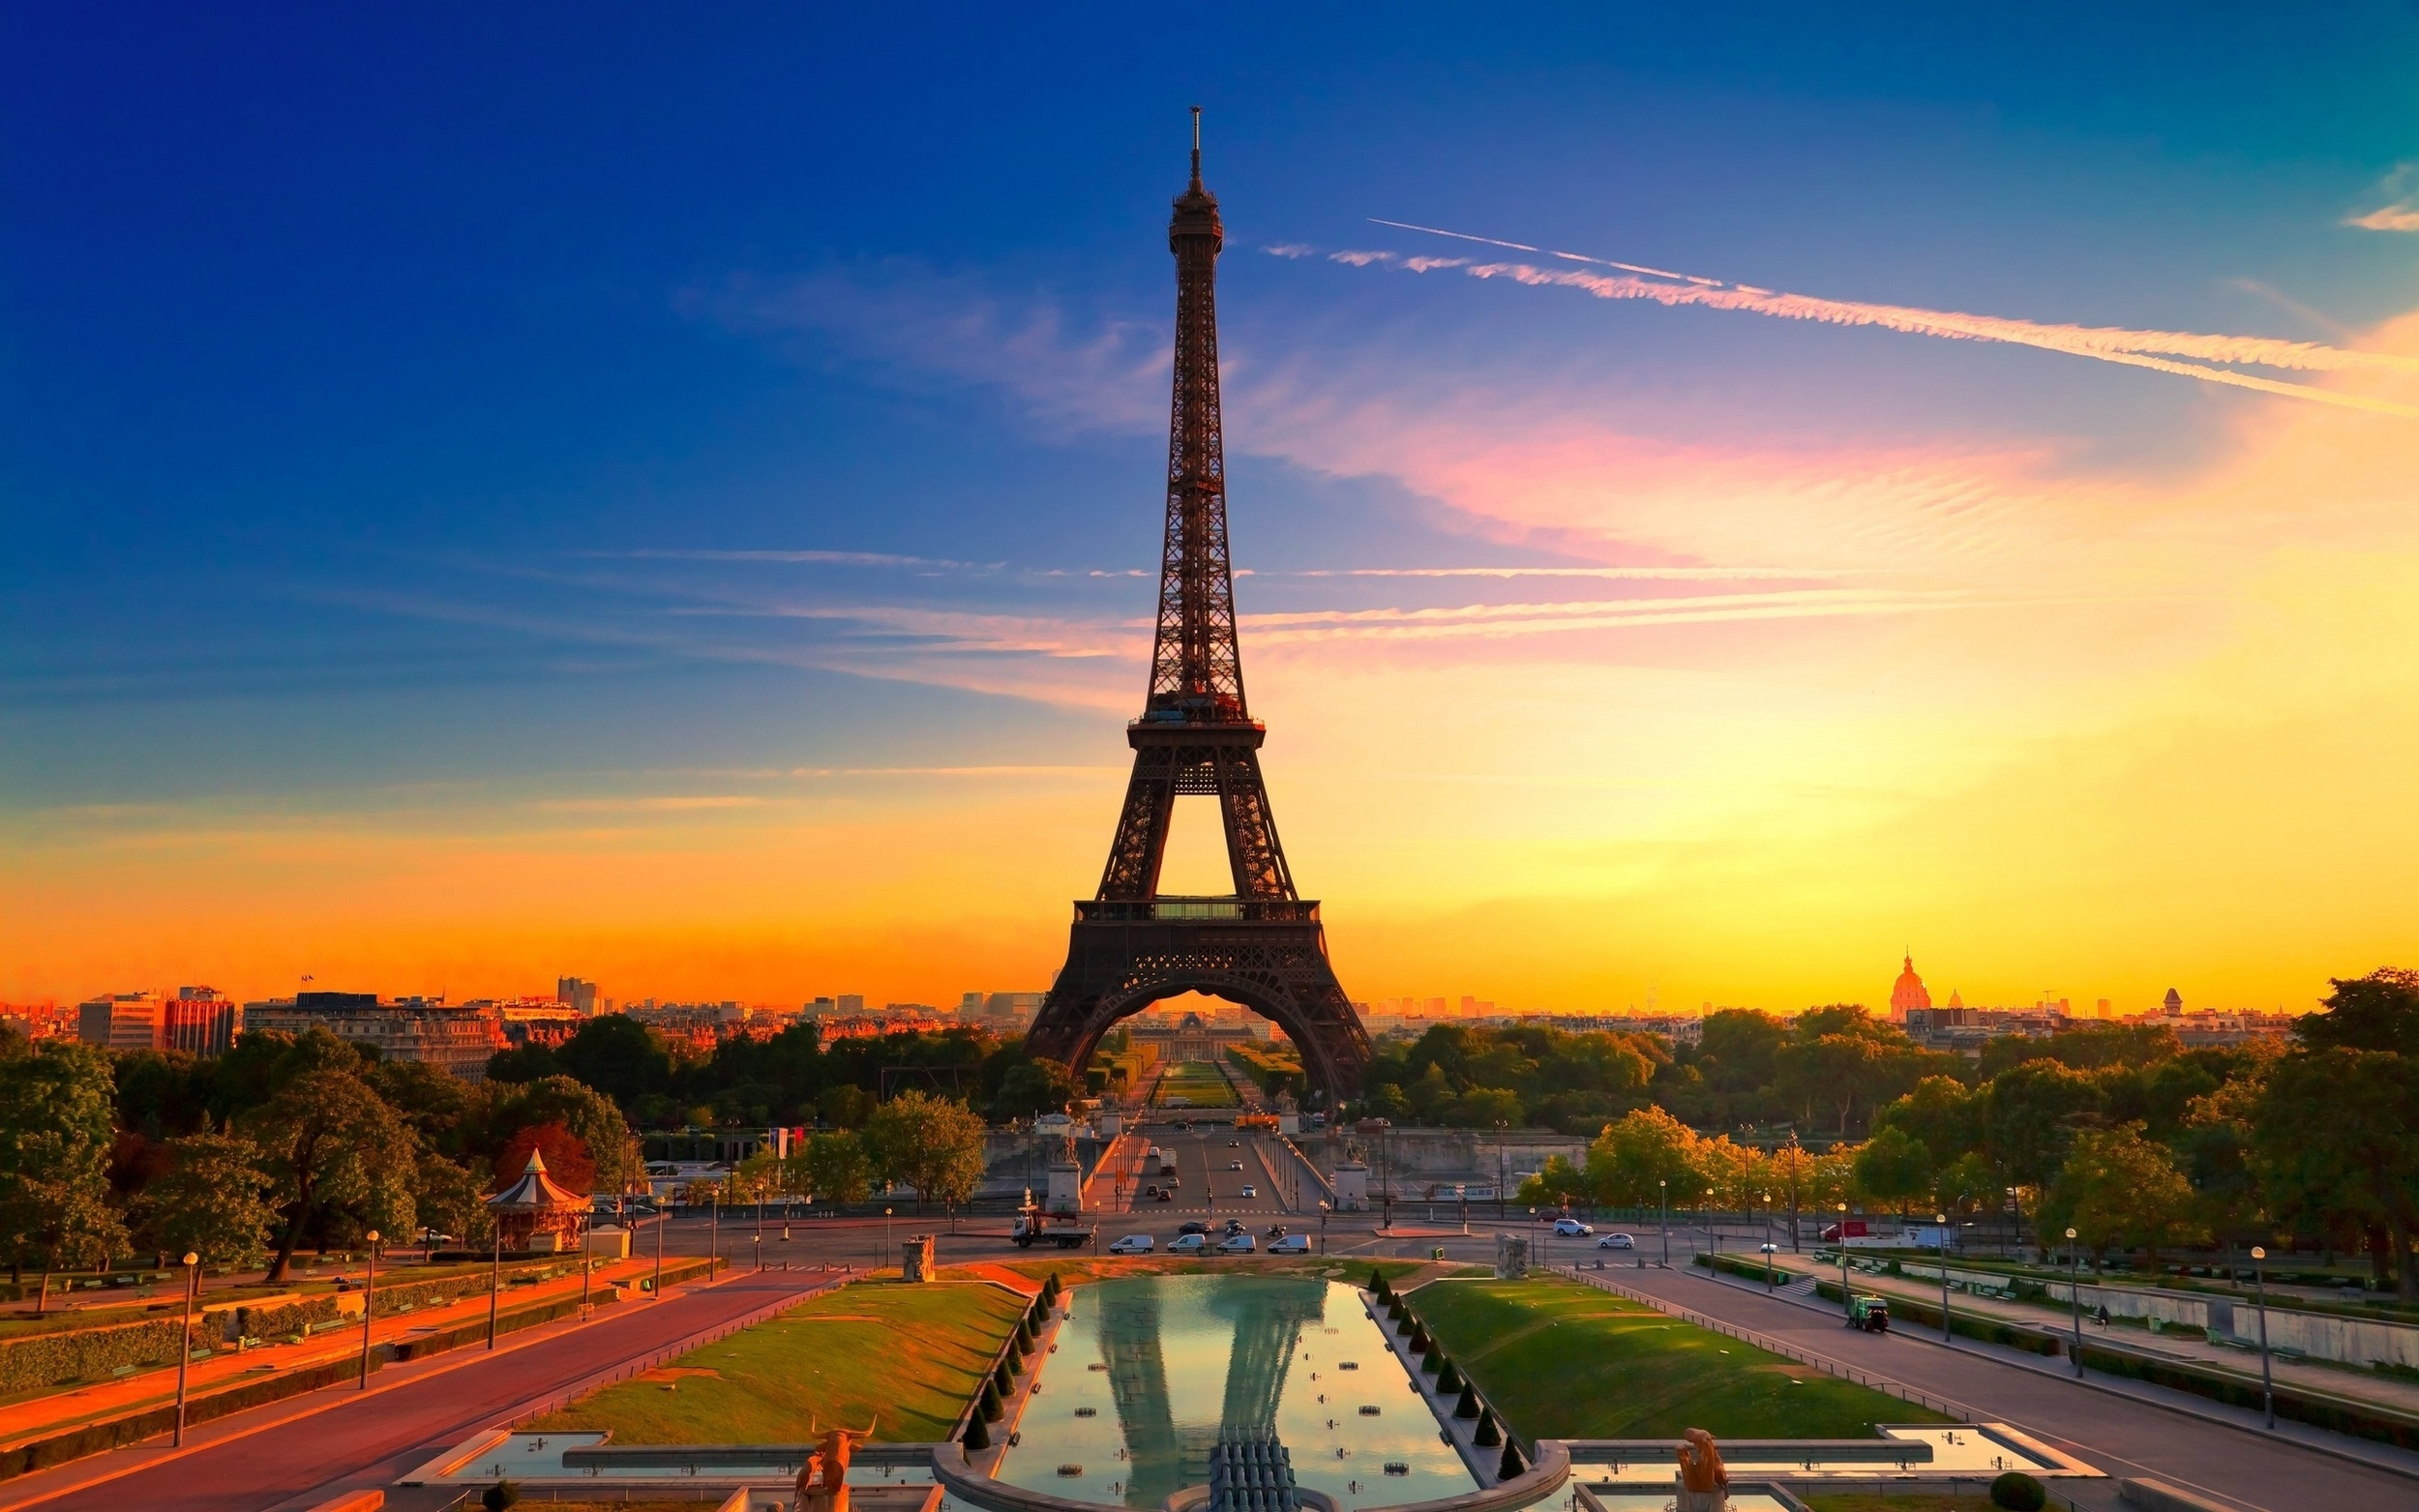 The-Eiffel-Tower-At-Sunset.jpg